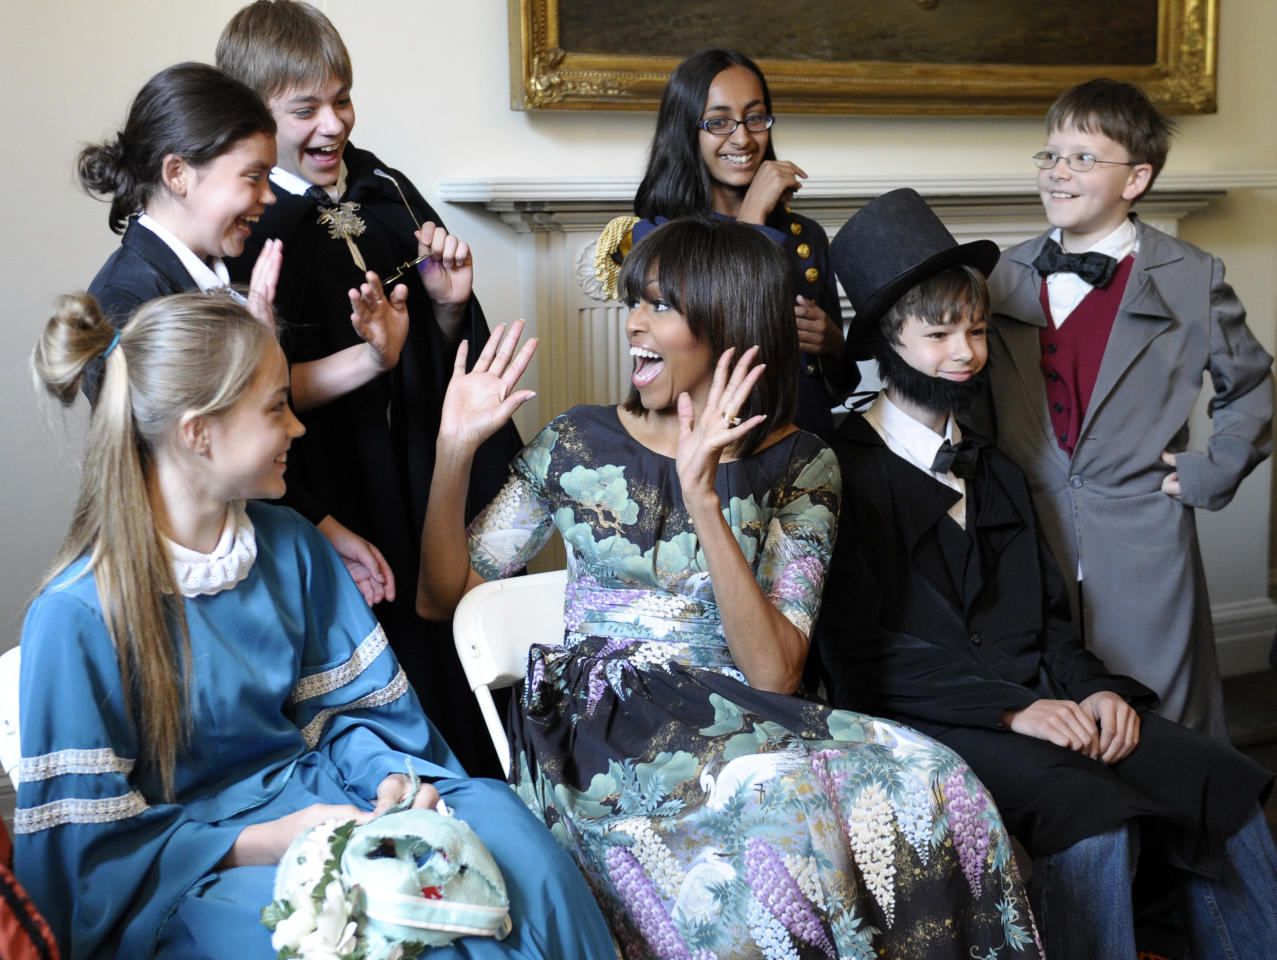 First lady Michelle Obama reacts as she surprises schoolchildren from Willow Springs Elementary School in Fairfax, Va., before they performed part of a play at the Decatur House, a National Trust for Historic Preservation Site and home to the David M. Rubenstein National Center for White House History, in Washington, Wednesday, May 22, 2013. The events were part of an announcement of a major philanthropic effort to preserve the Decatur House. (AP Photo/Susan Walsh)